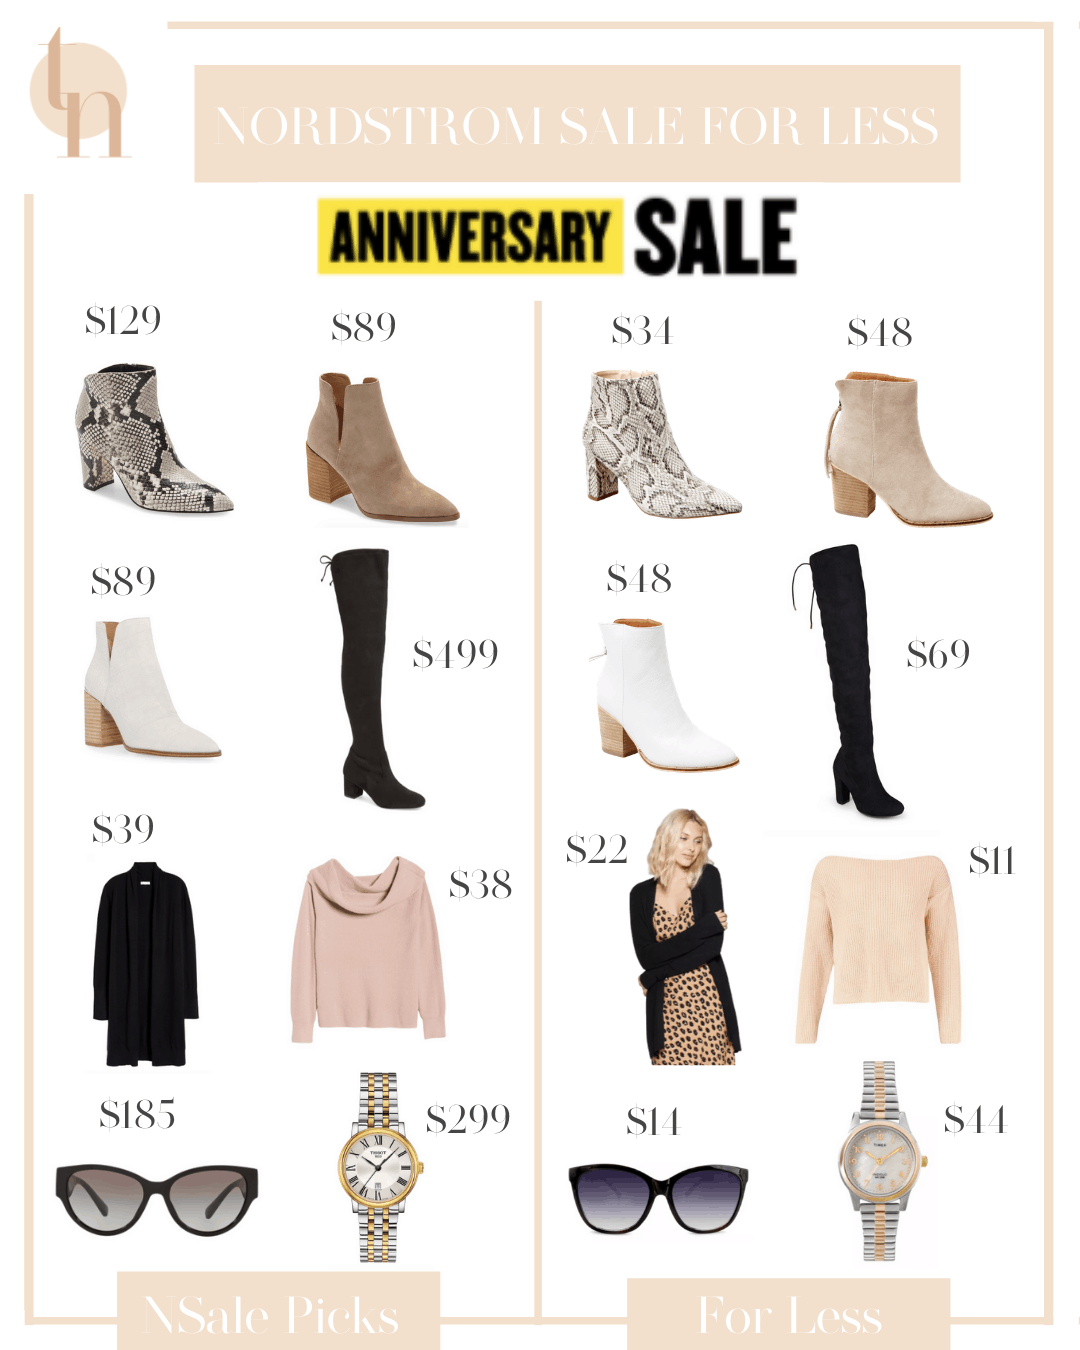 Nordstrom Anniversary Sale by popular Dallas fashion blog, Glamorous Versatility: collage image of white ankle books, black over the knee boots, snakeskin ankle boots, tan suede ankle boots, black cardigan, pink slouch neck sweater, black frame sunglasses, and gold and silver watch.